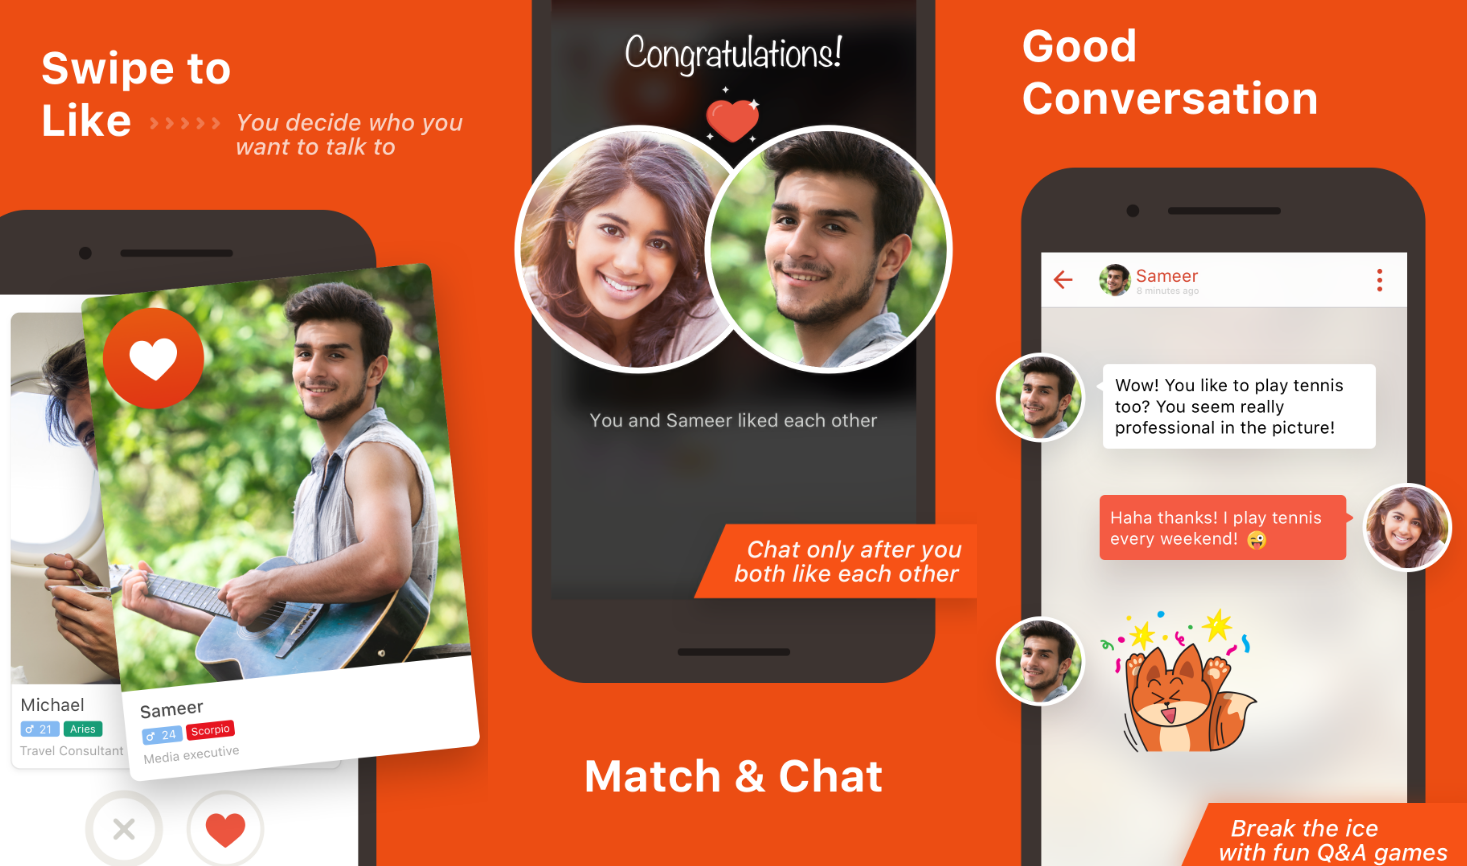 15 Best Dating Apps in India - Tinder, Happn, Bumble & More